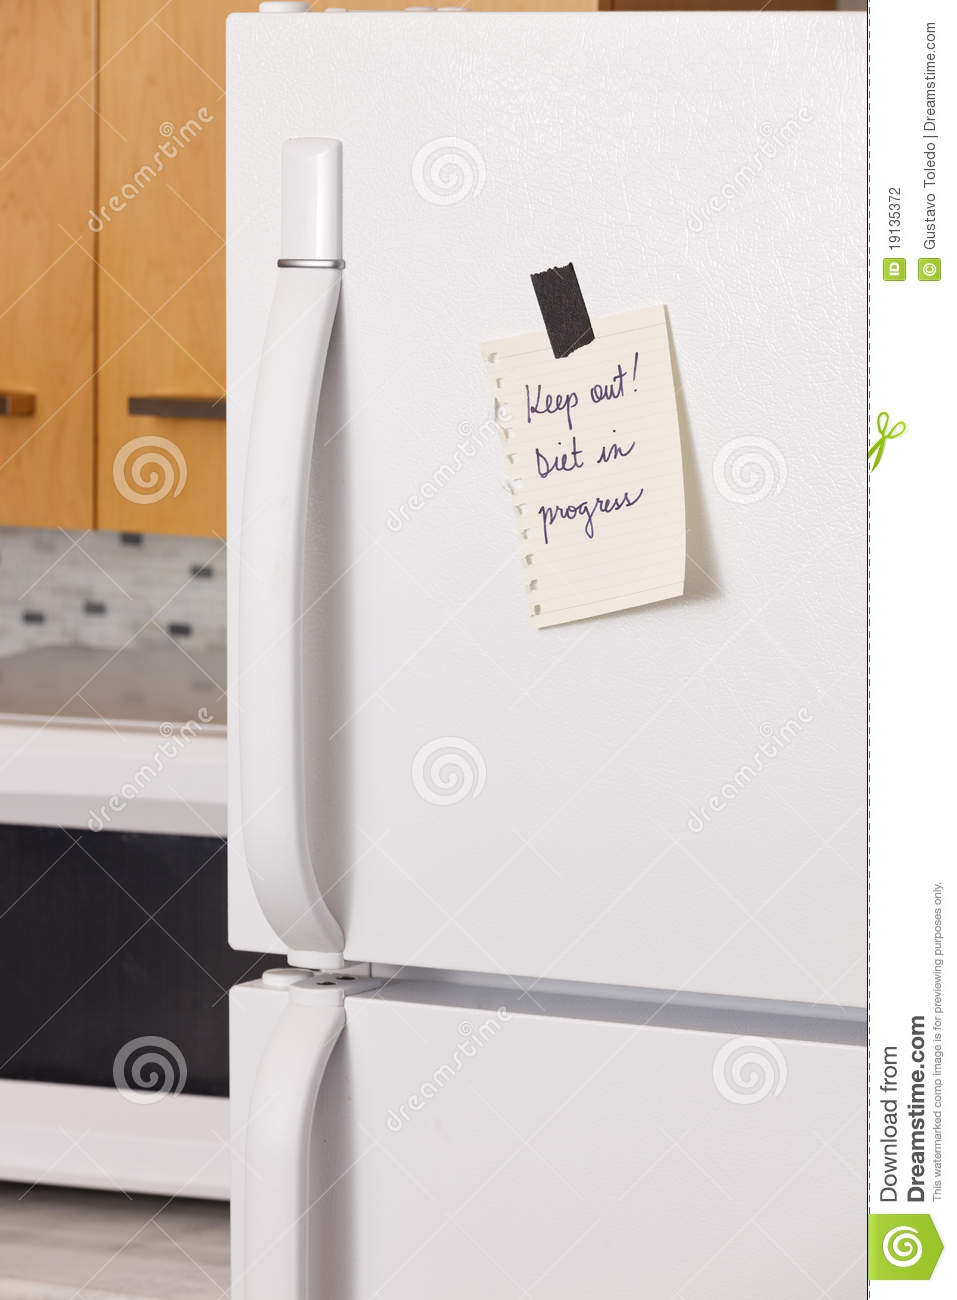 Note On Refrigerator Door Stock Photo Image Of Phrase